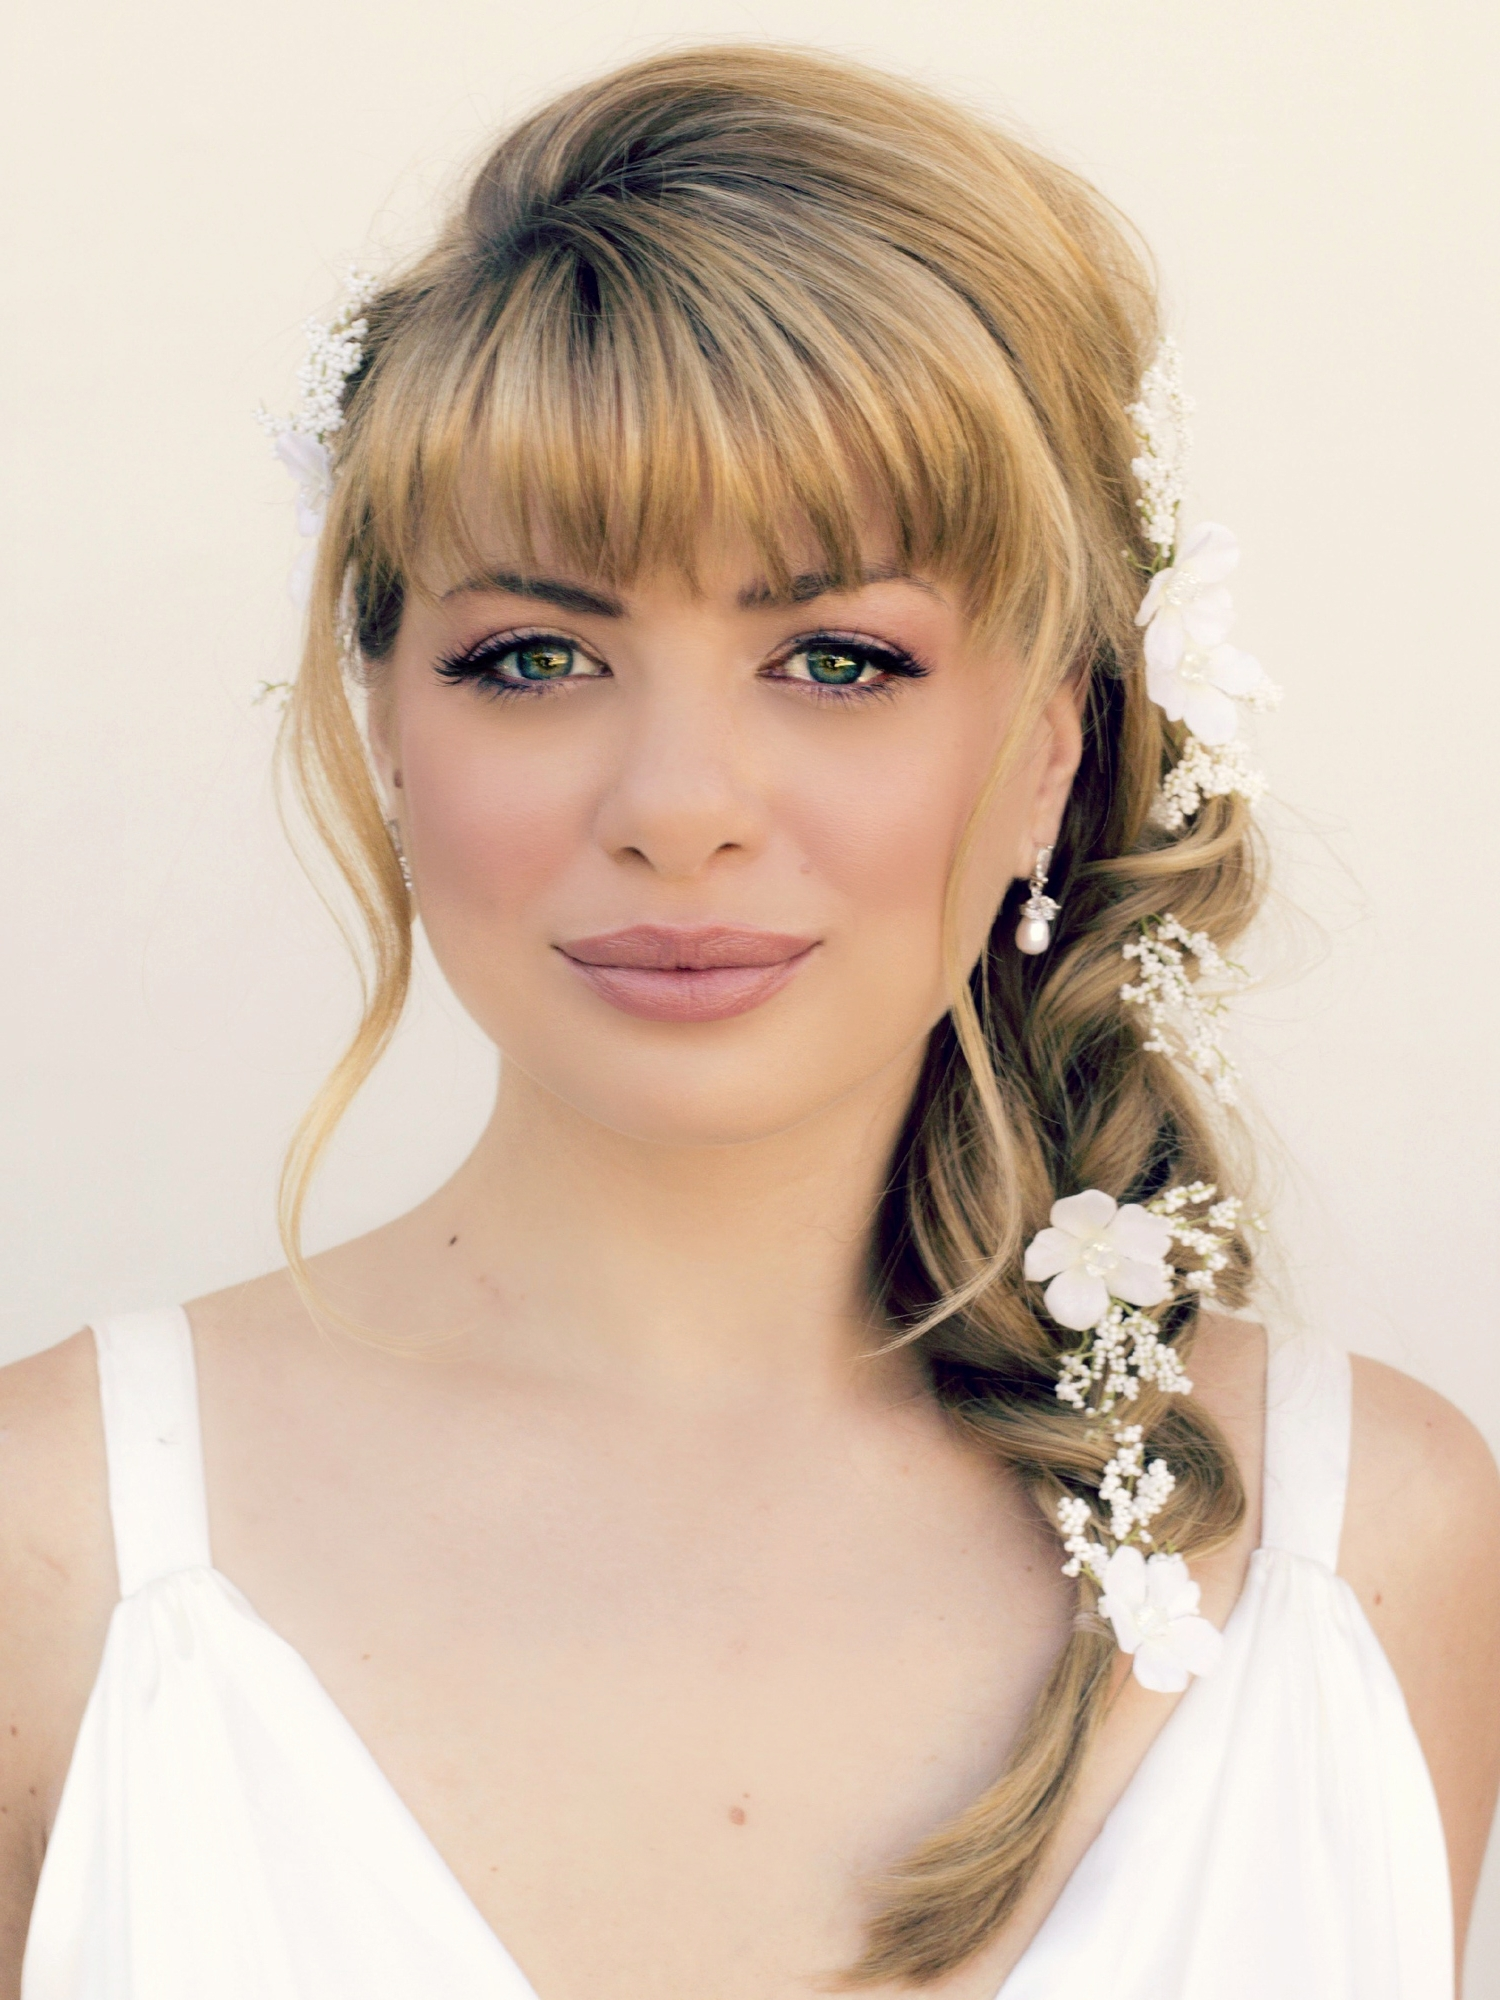 Awesome Cute Hairstyles For Medium Length Hair With Bangs – Hair For Updo Hairstyles With Bangs For Medium Length Hair (View 3 of 15)